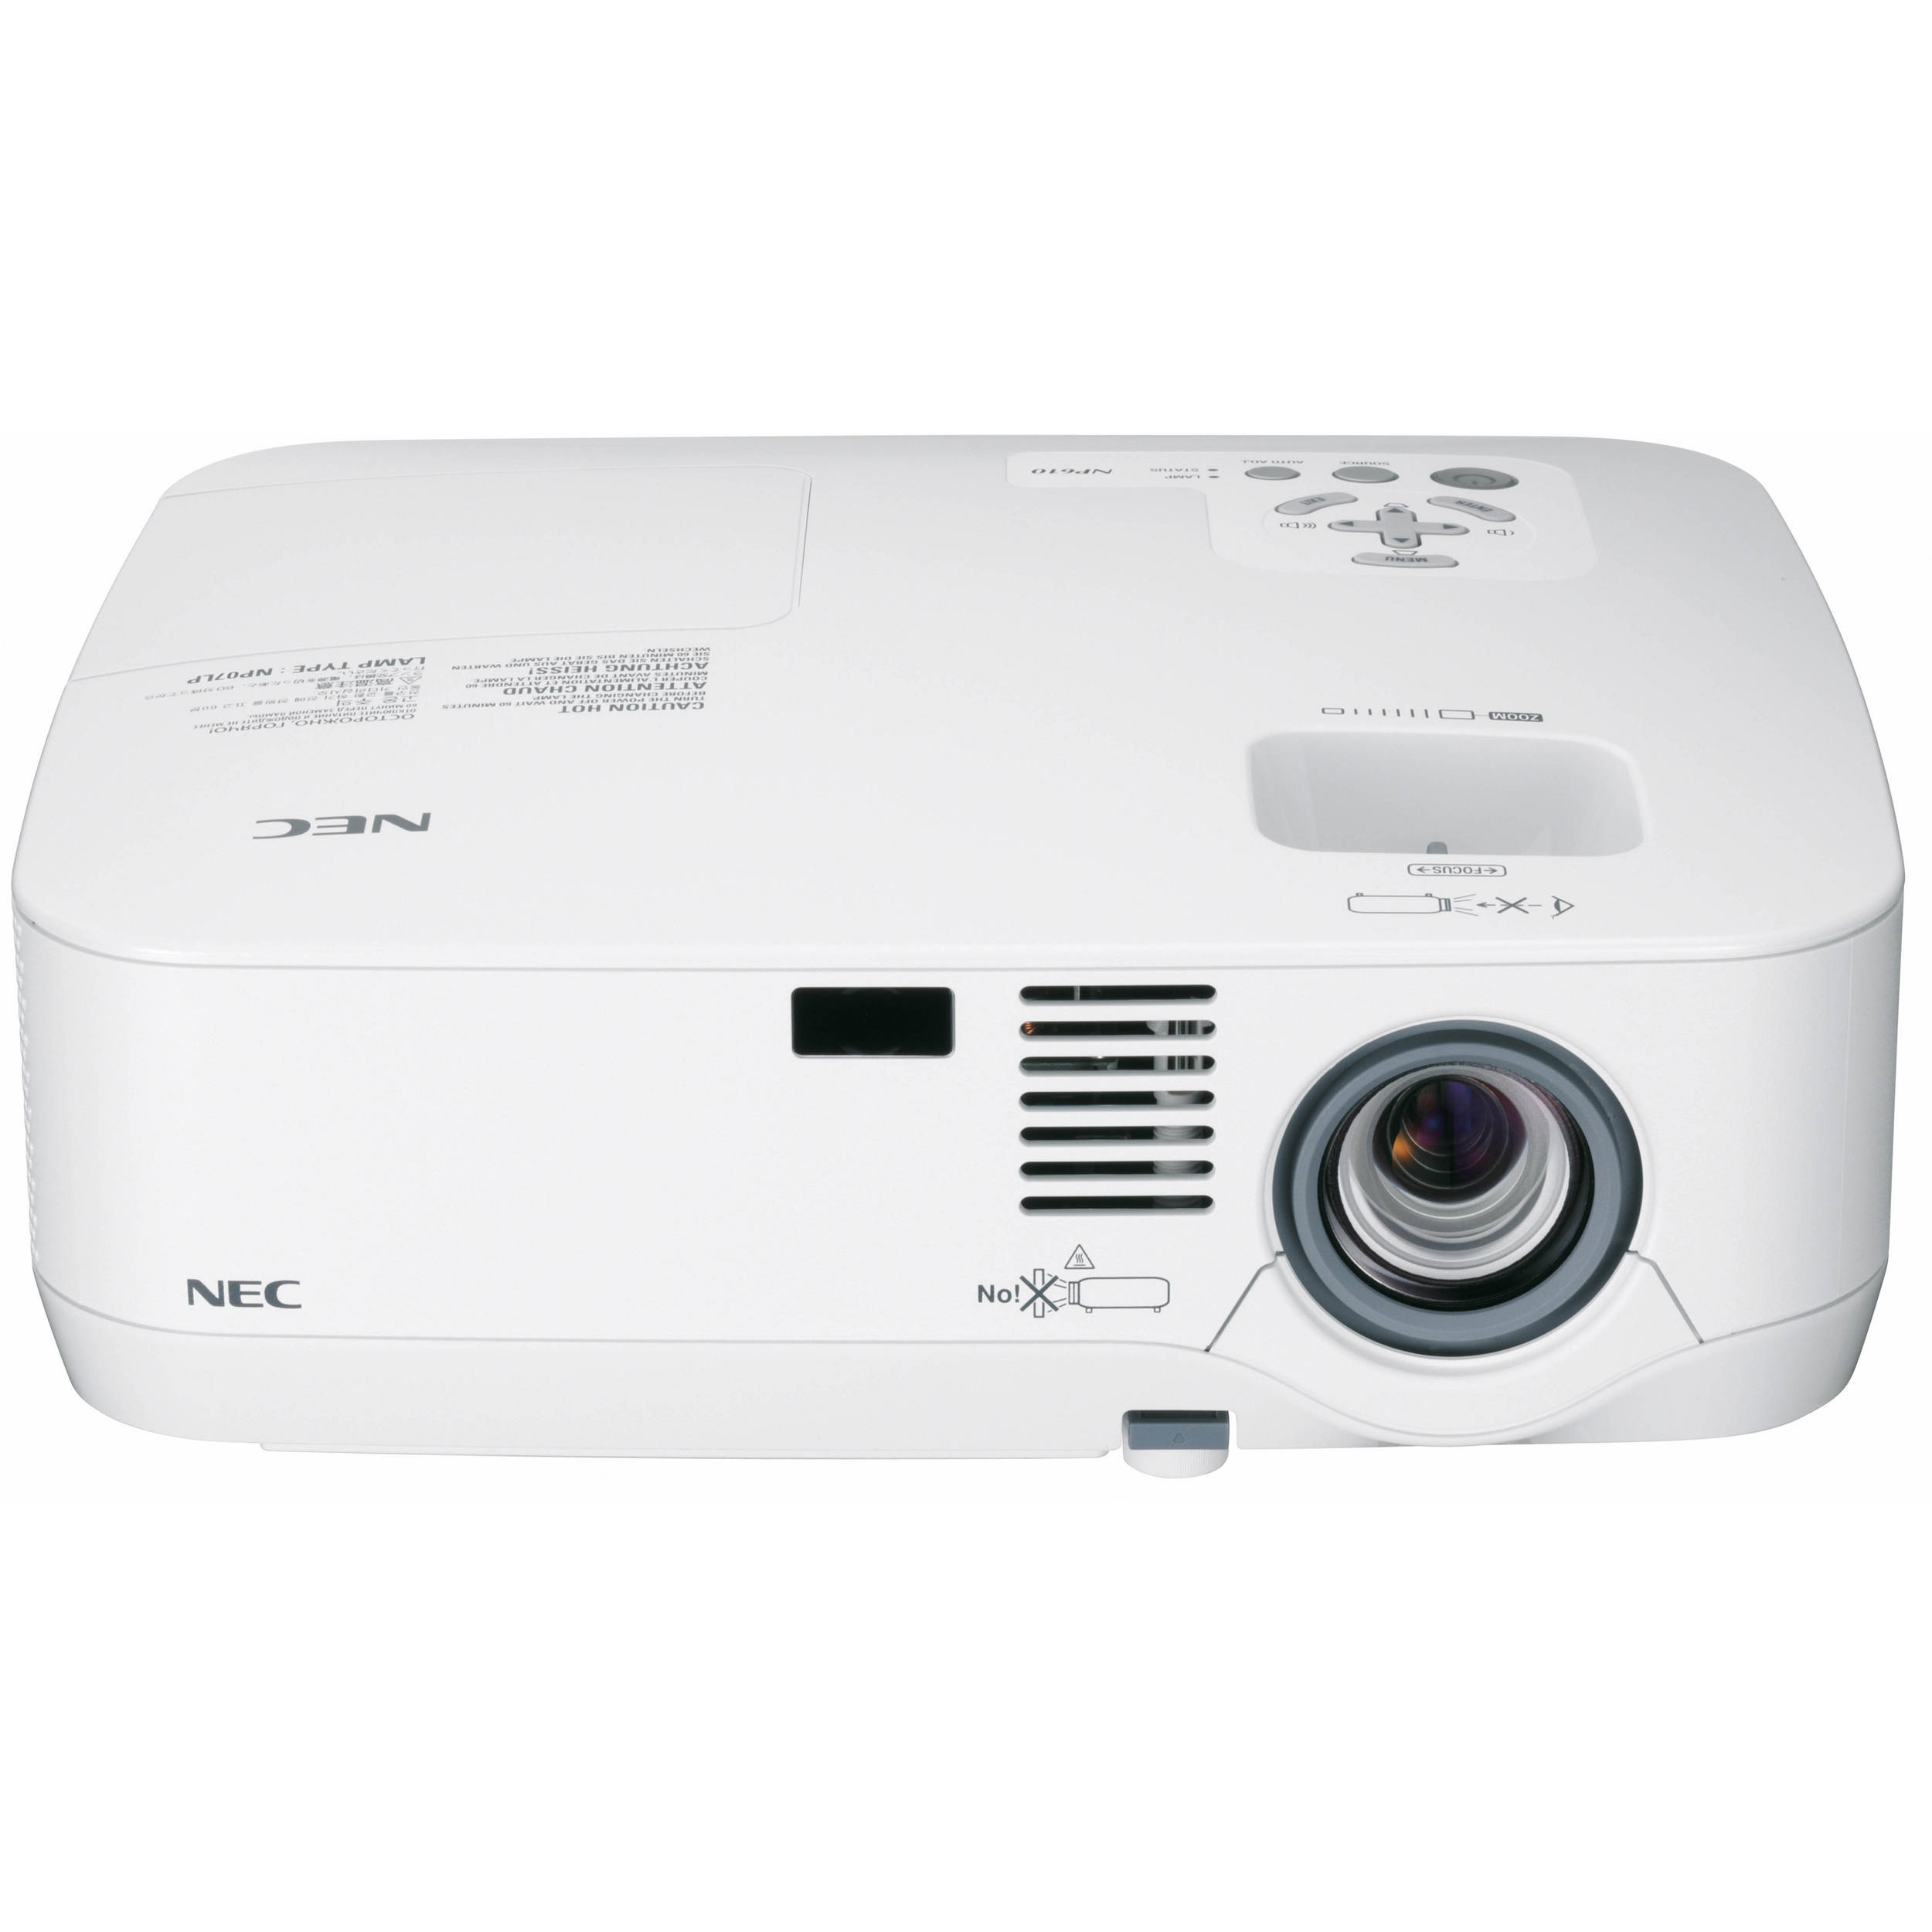 Nec np410w portable projector np410w b h photo video for Portable video projector